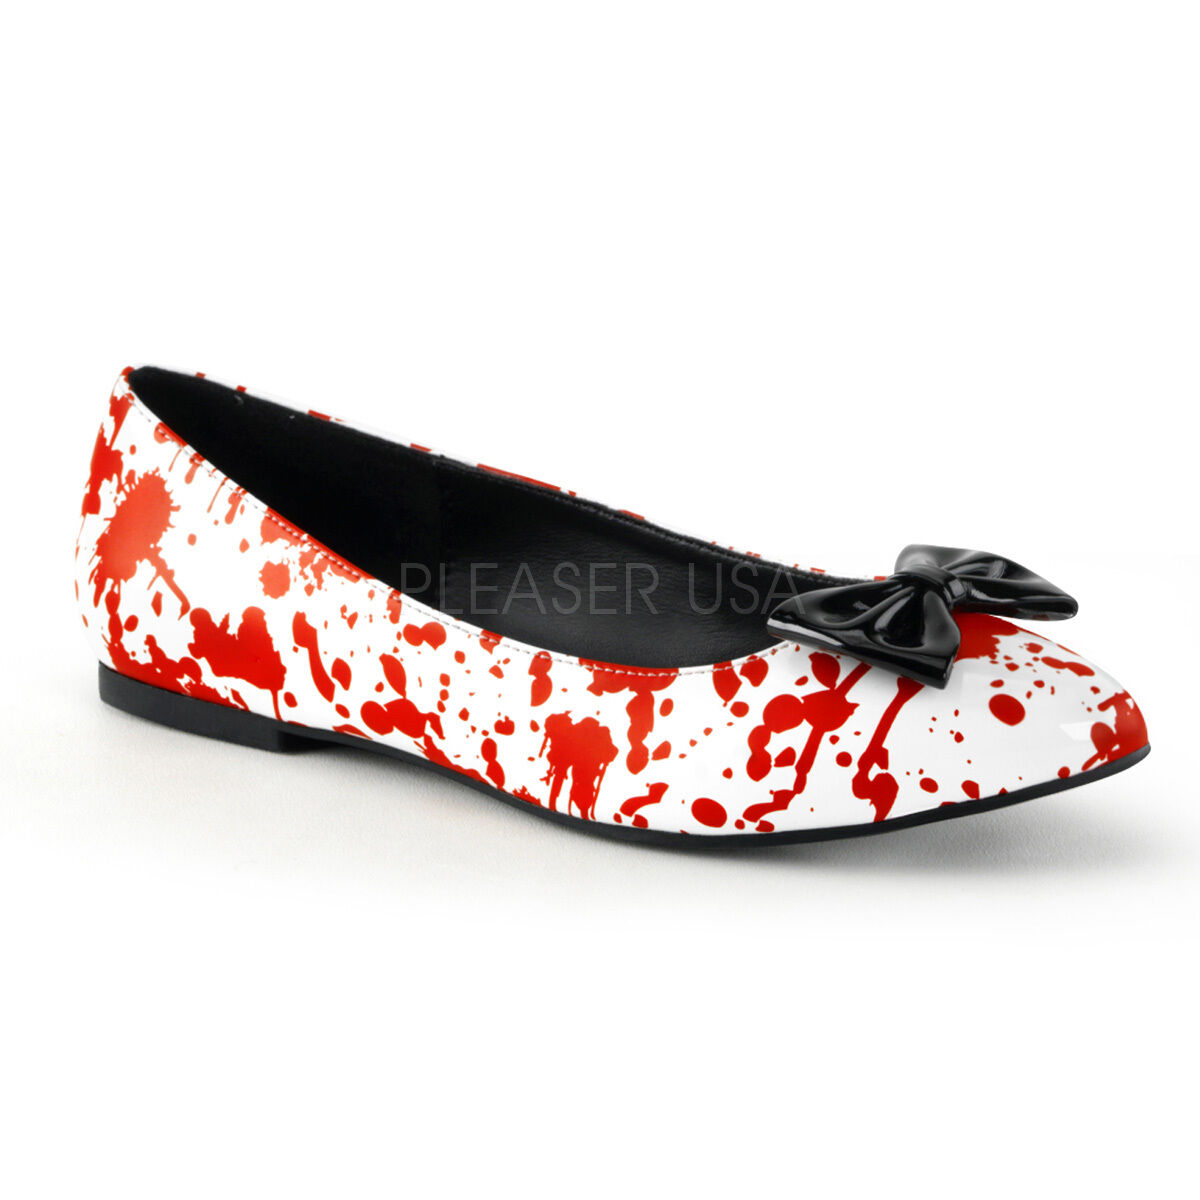 Bloody Pointed Toe Flats Nurse Zombie Gory Halloween Costume White Red shoes